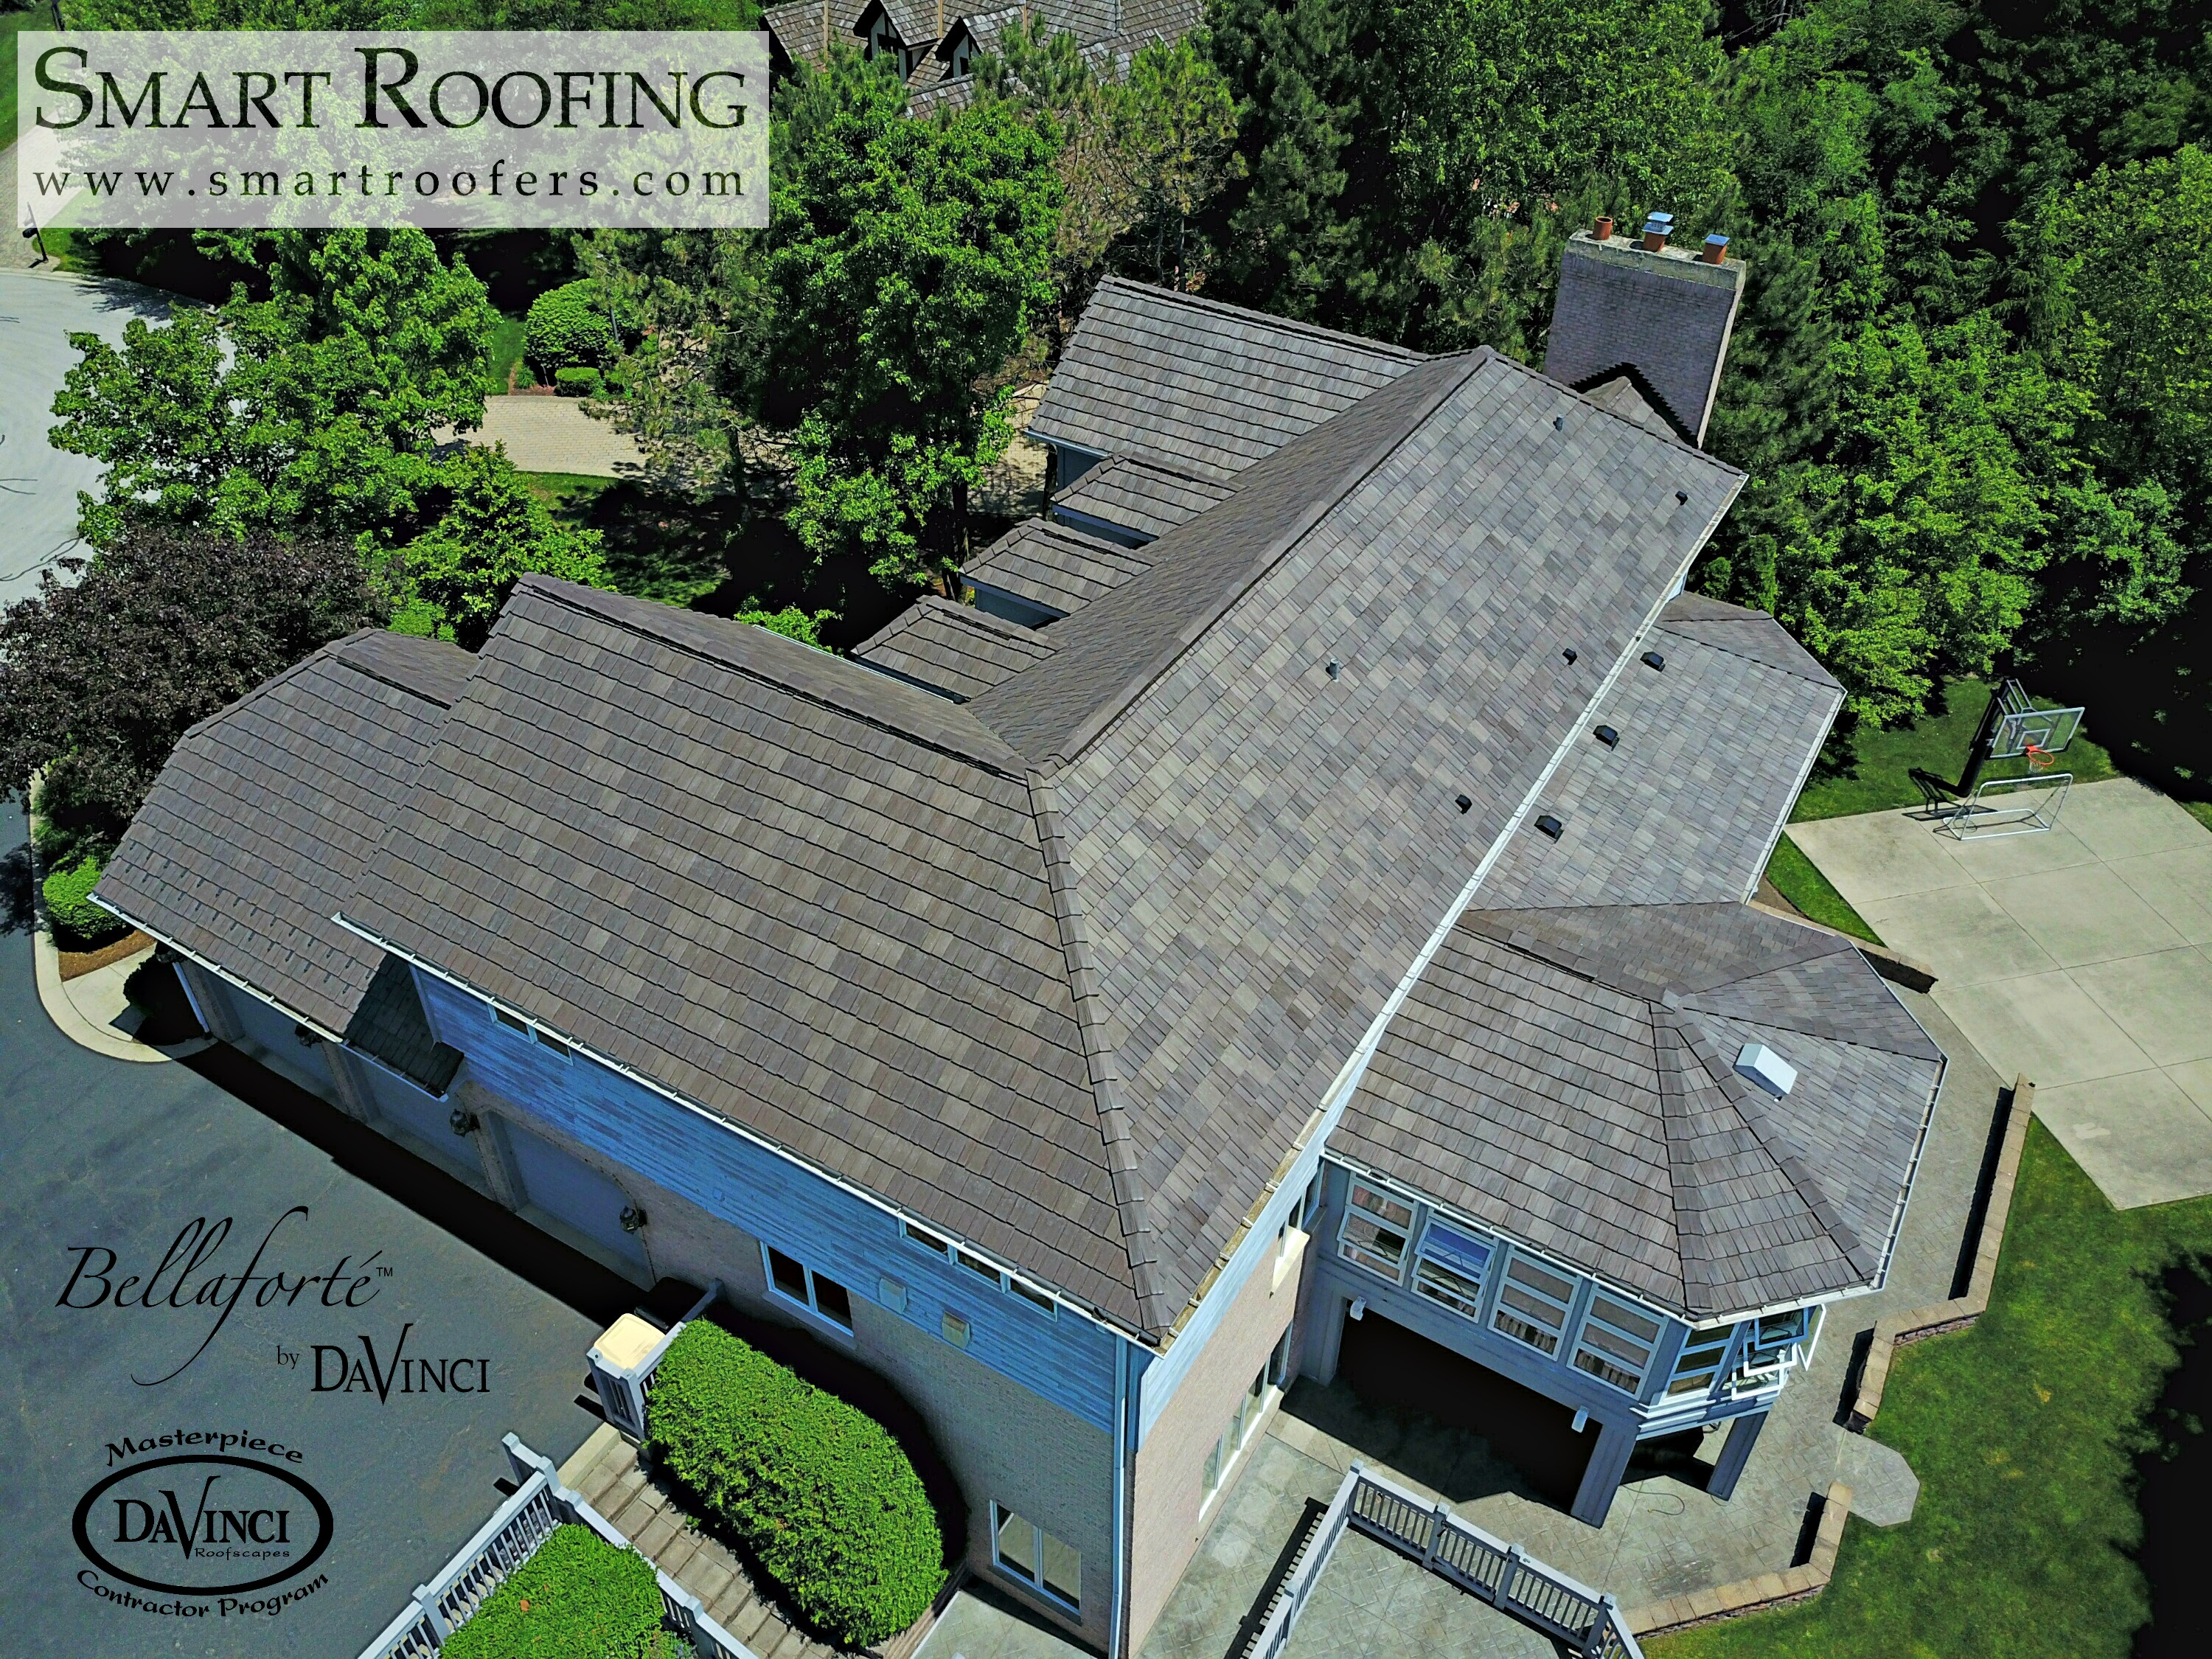 Bellaforté Shake Roofing Tiles Will Not Break Like Natural Shake Tiles U2013  Eliminating Material Waste. They Also Resist Curling, ...